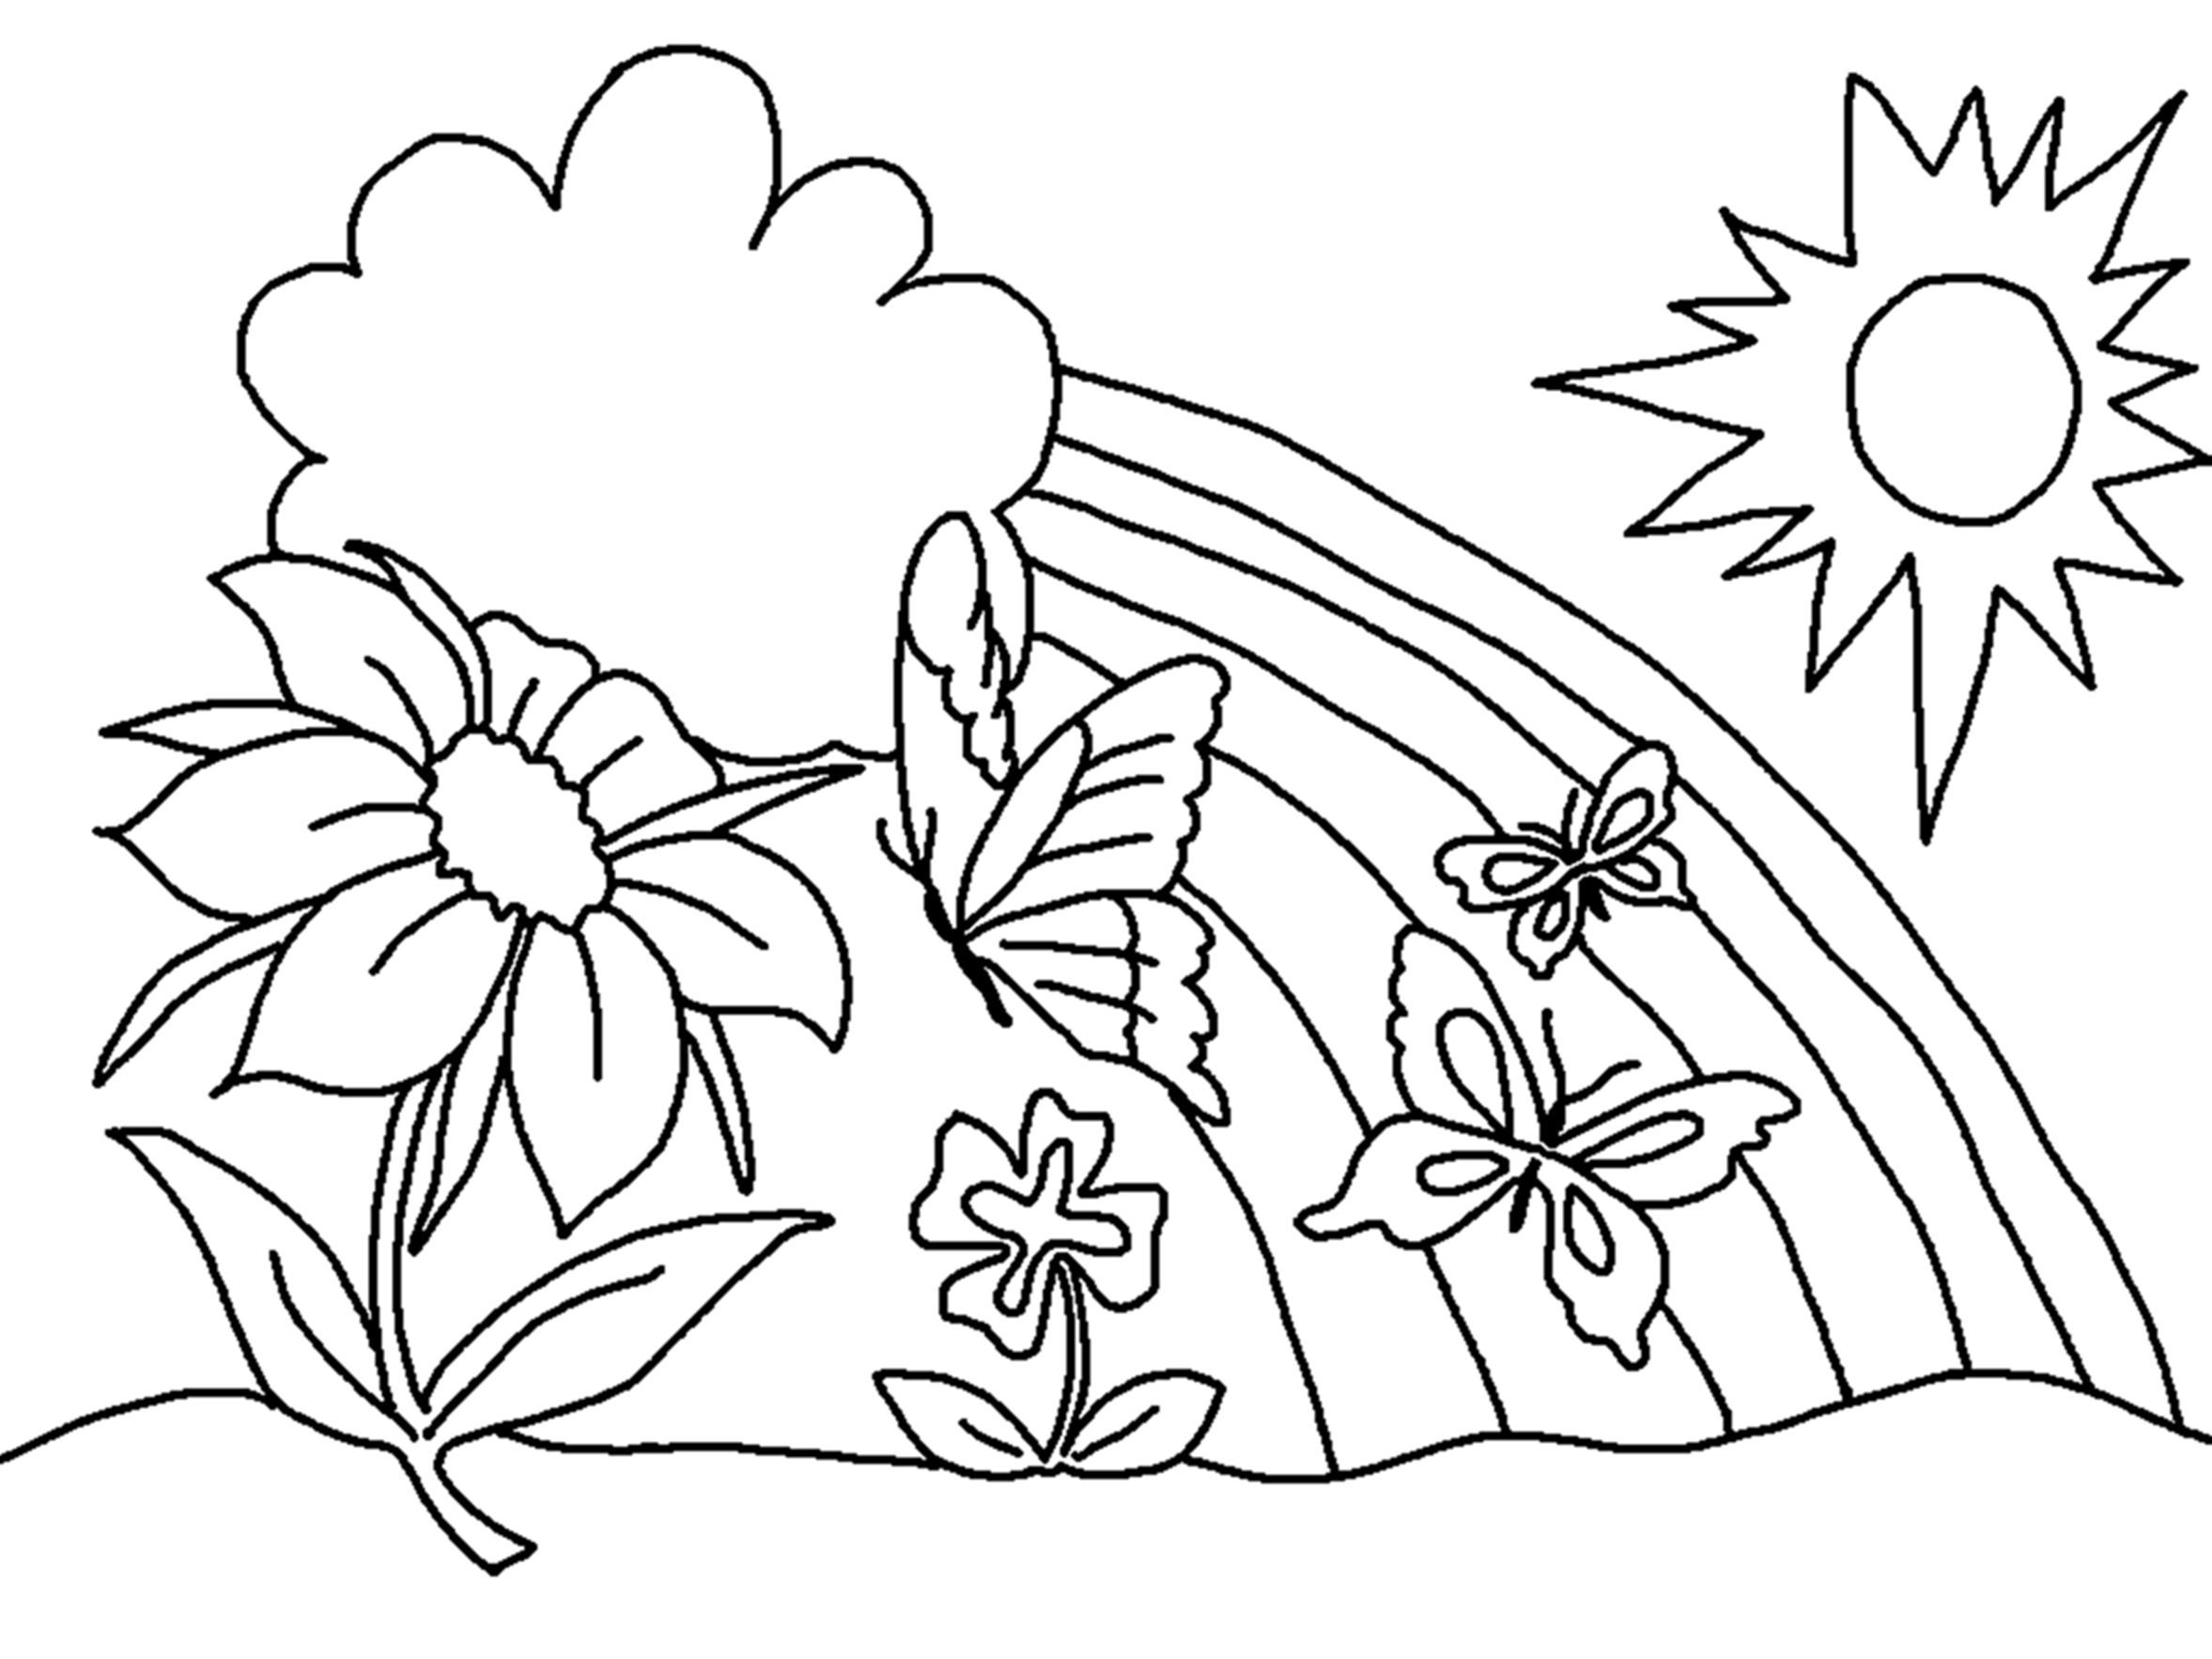 free coloring pages downloads - photo#6